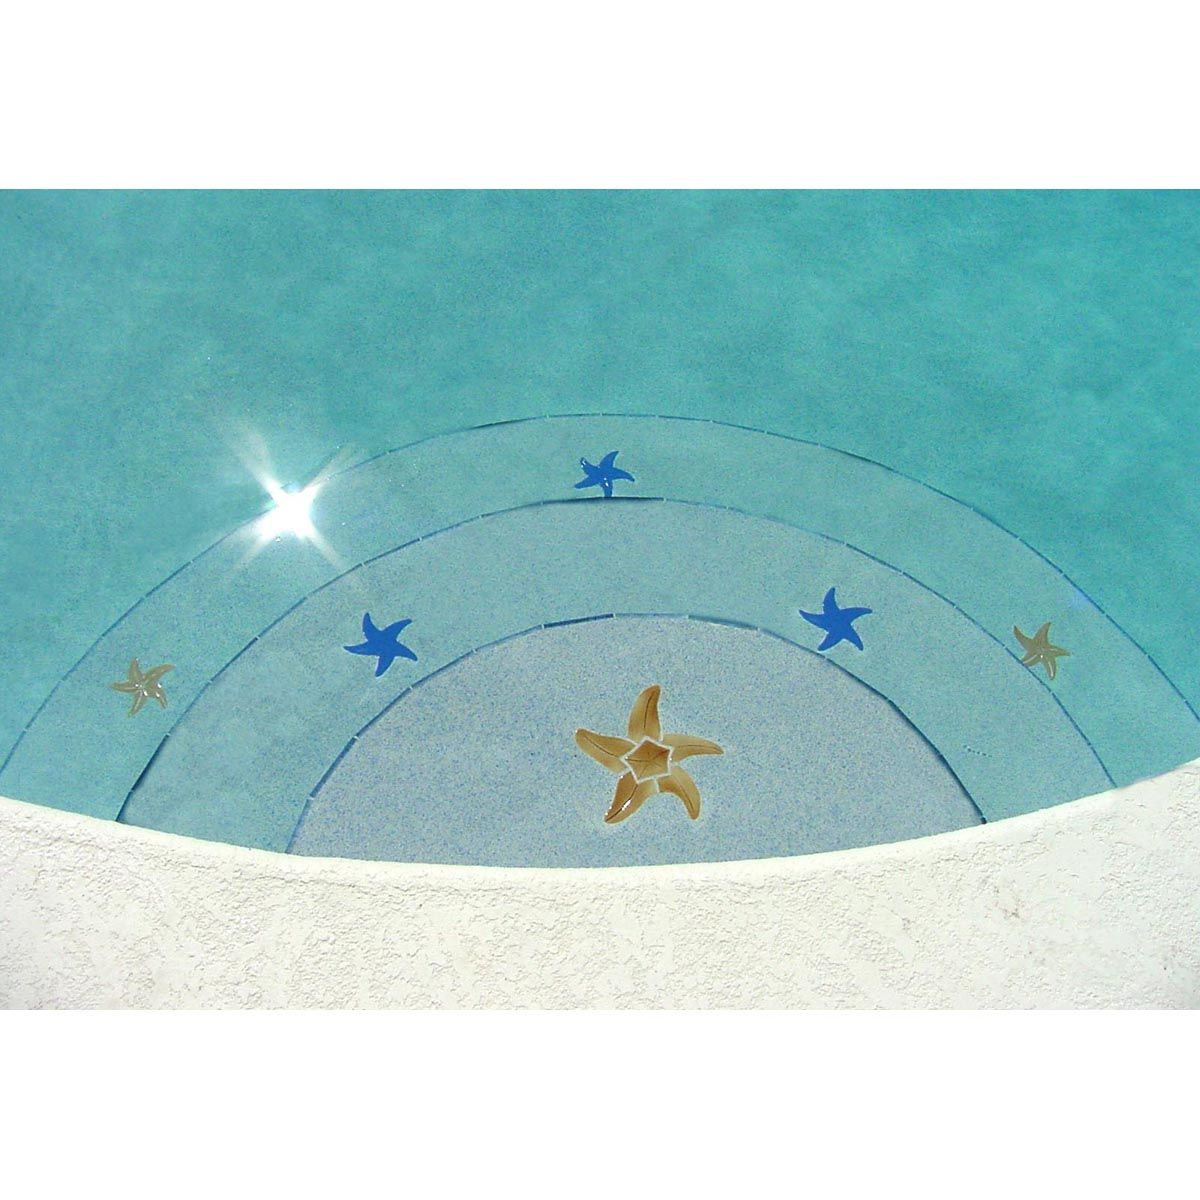 swimming pool mosaics - Google Search | pool tile ideas ...